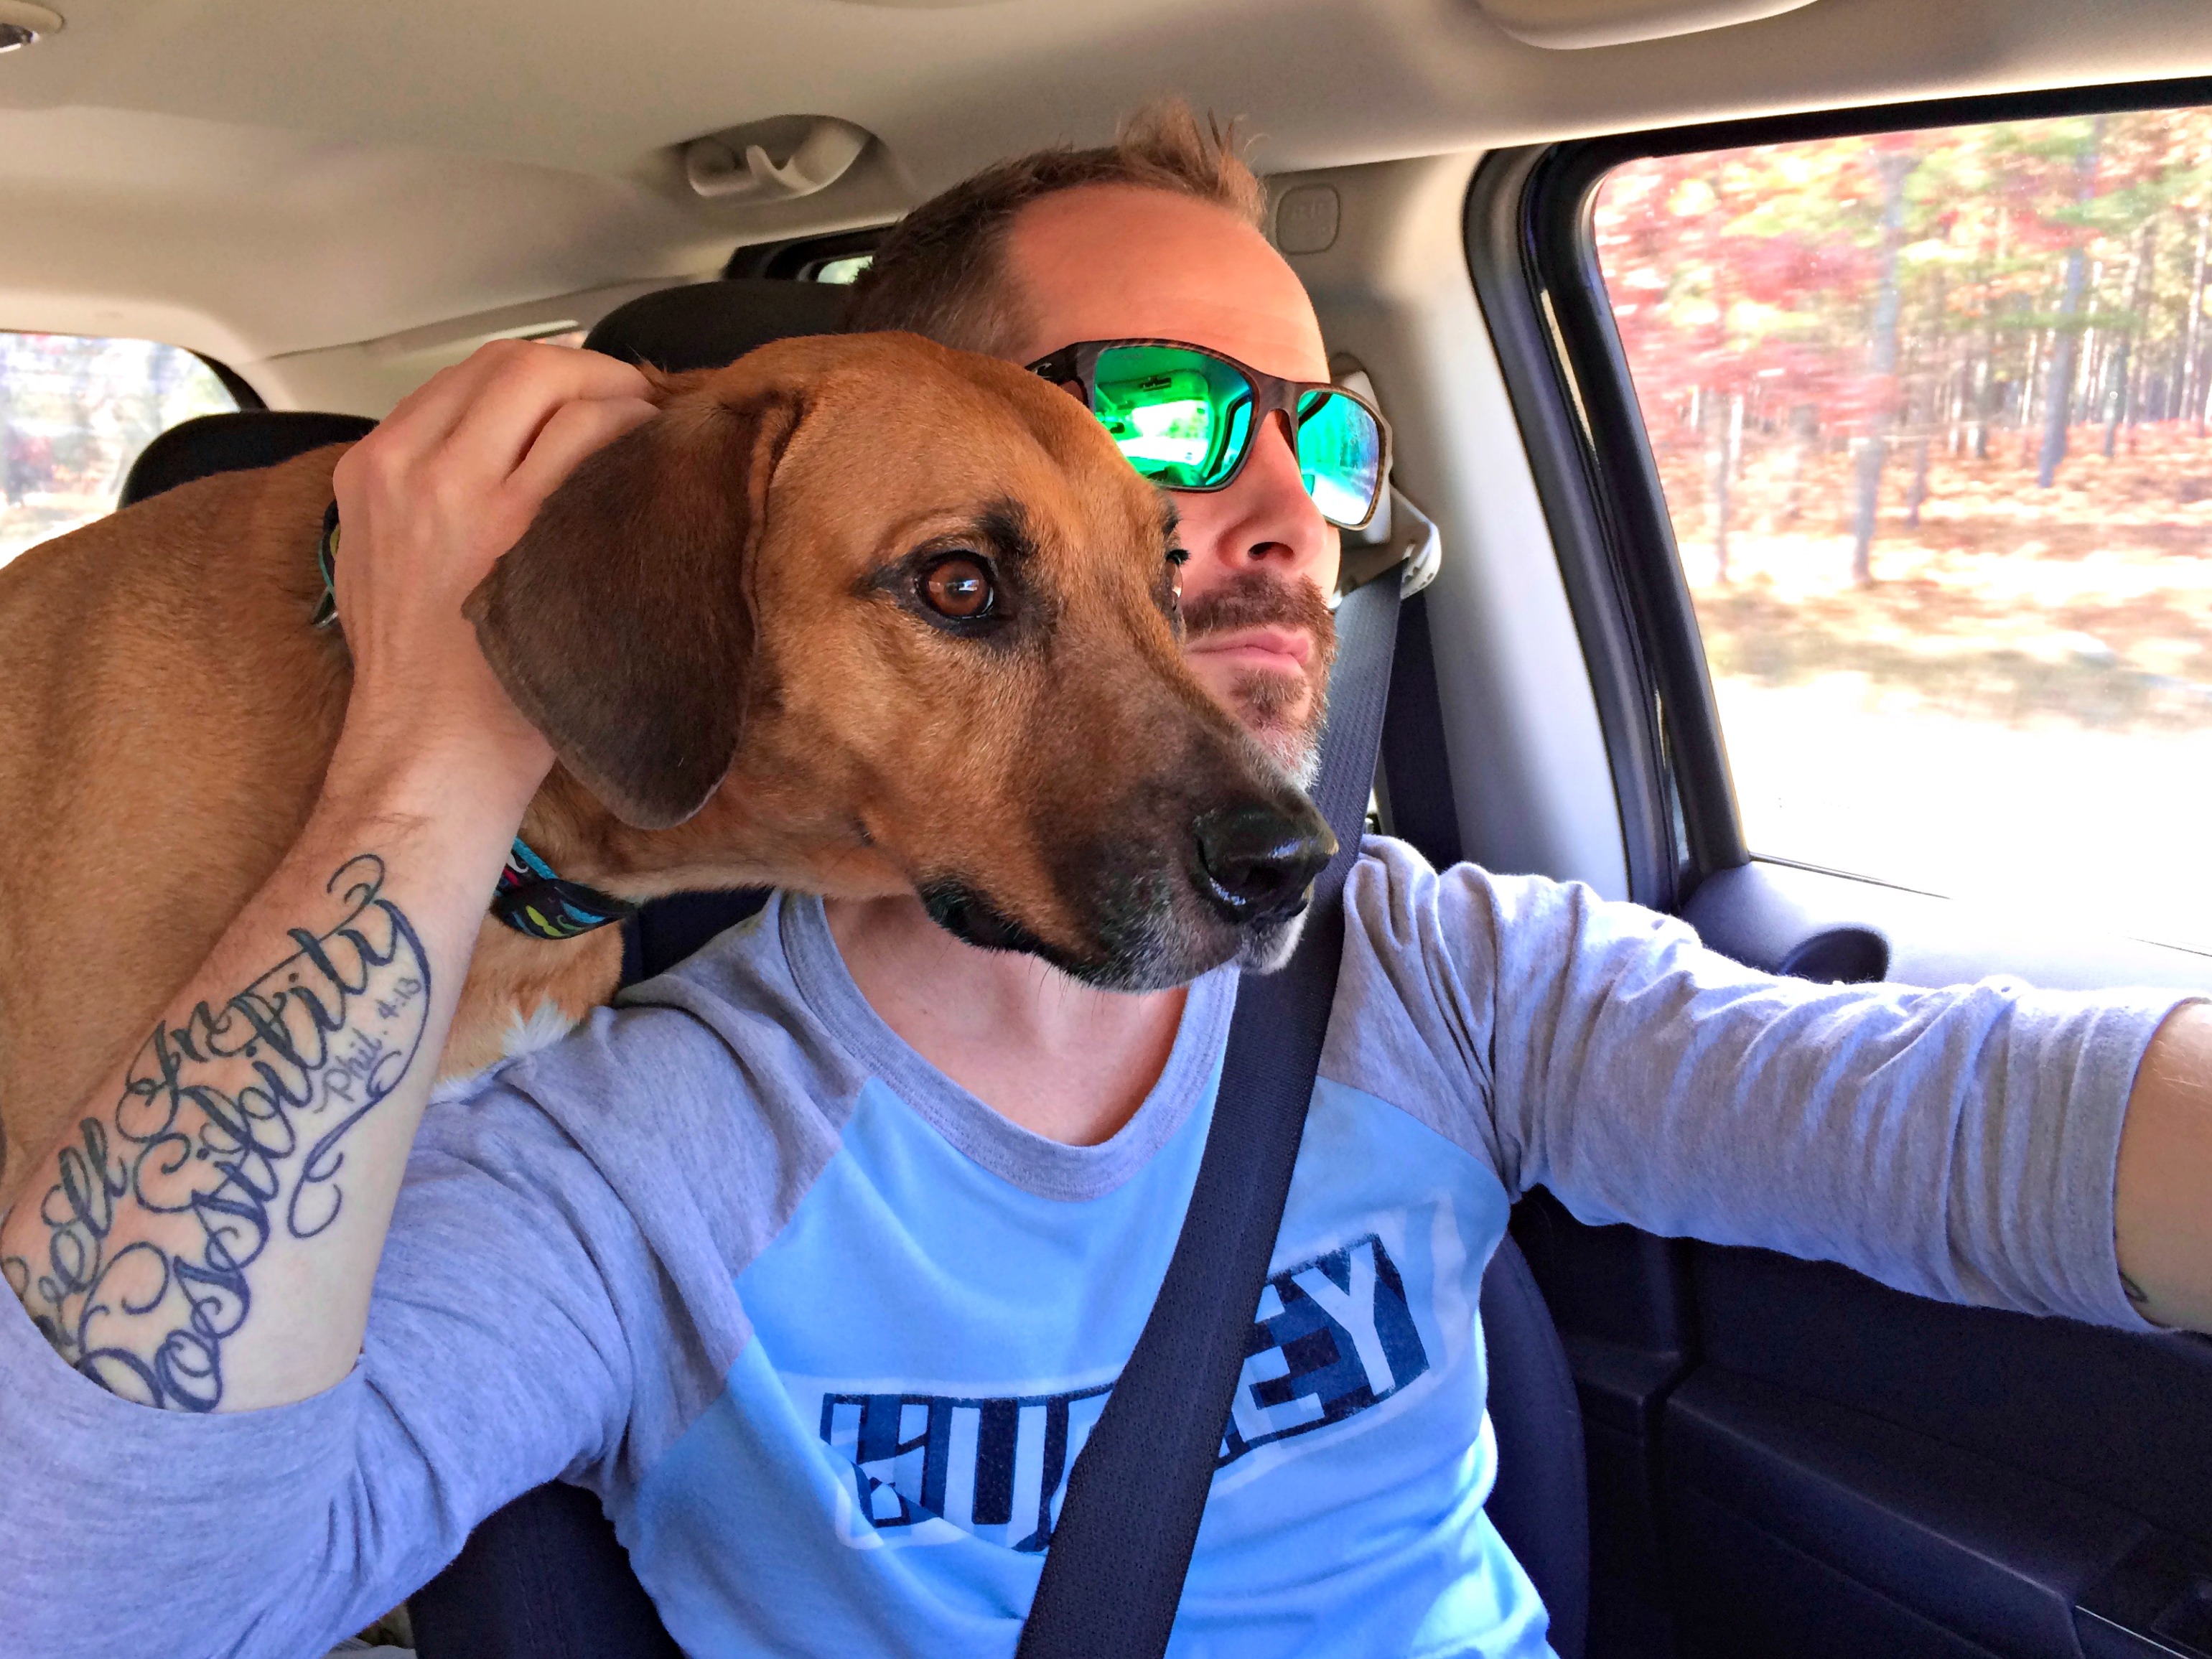 scott and roadie driving